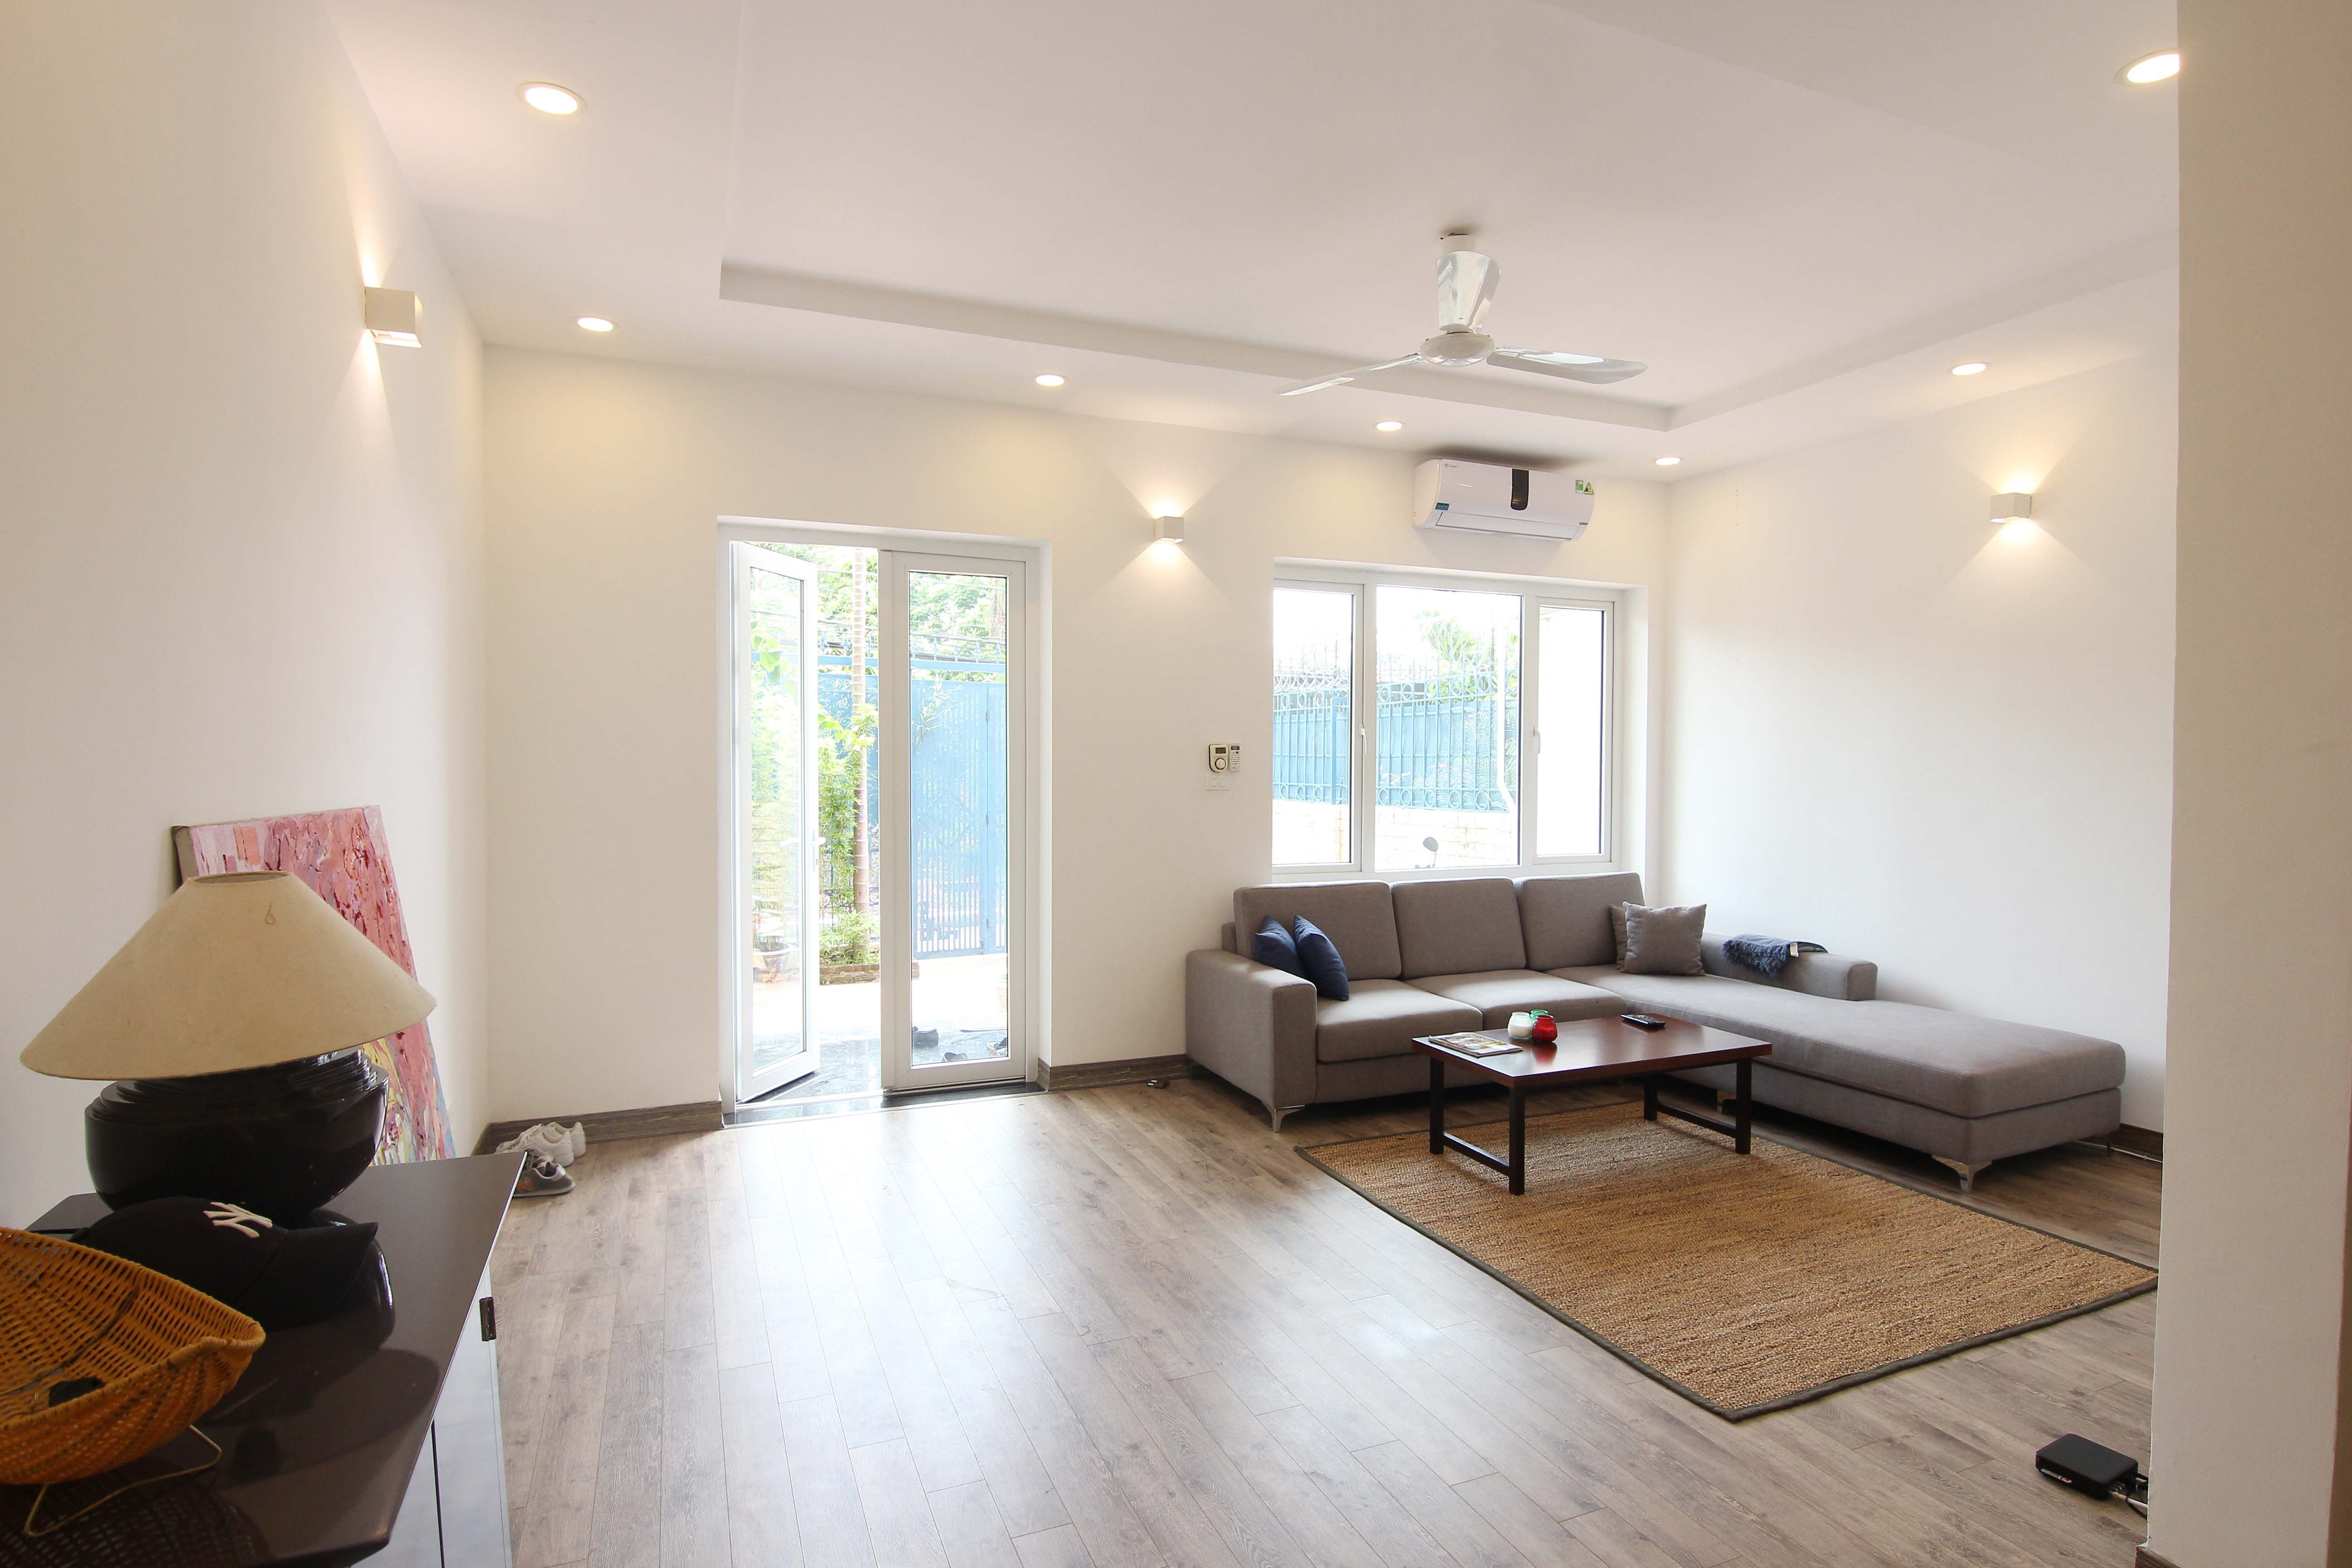 A lovely villa with 5 bedroom for rent on Xom Chua street, Tay Ho district 1